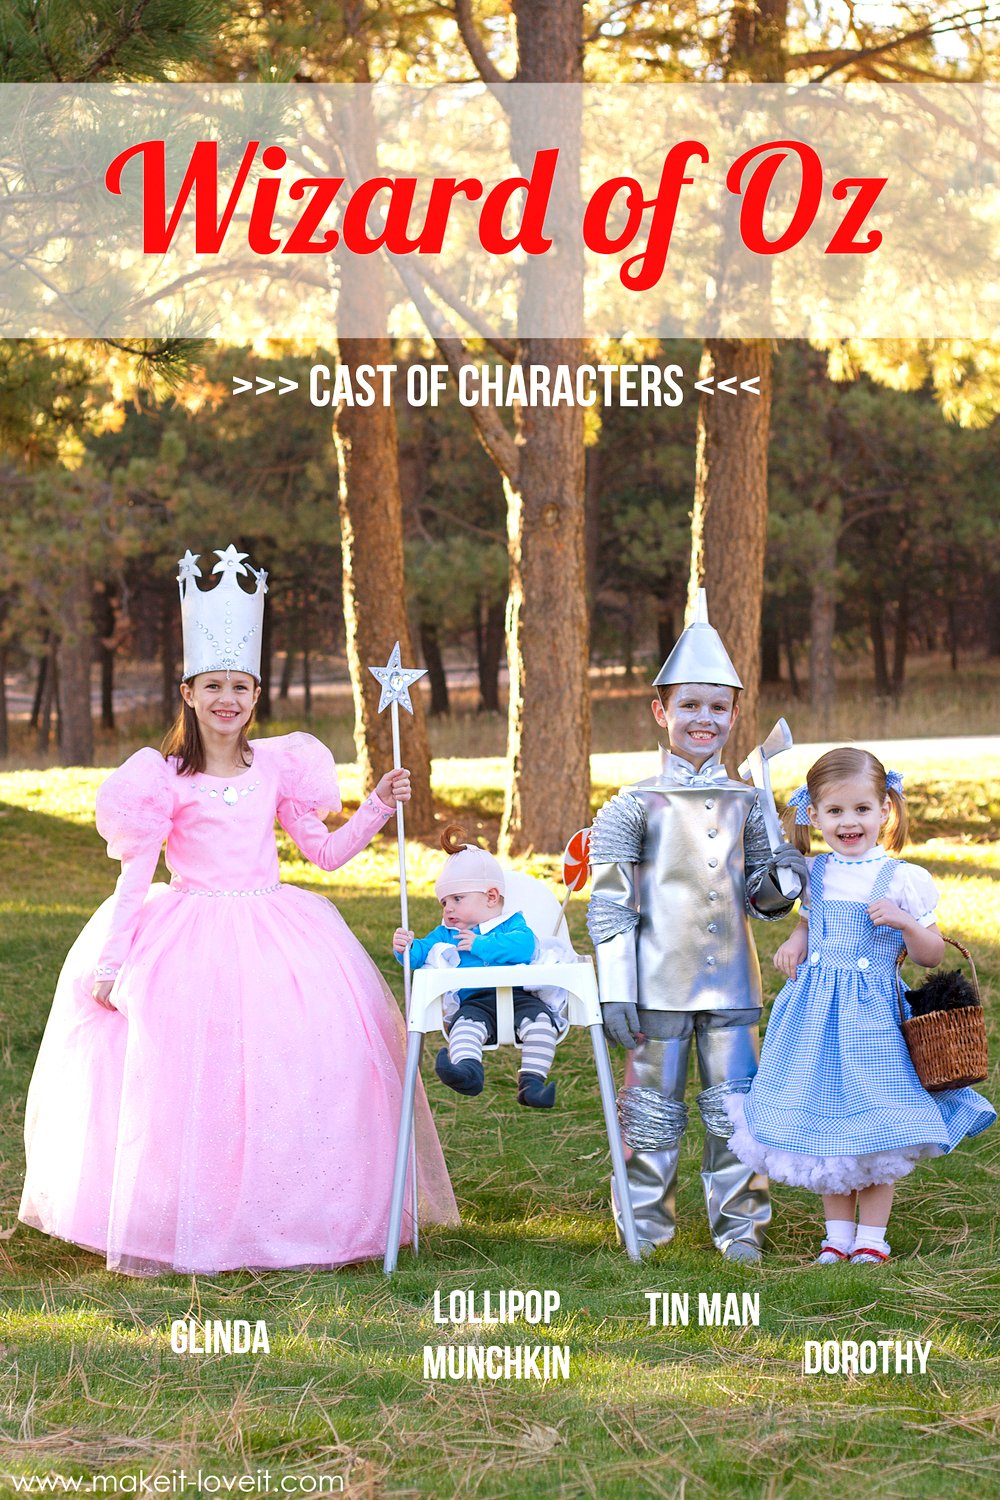 Halloween Costumes 2014: The whole